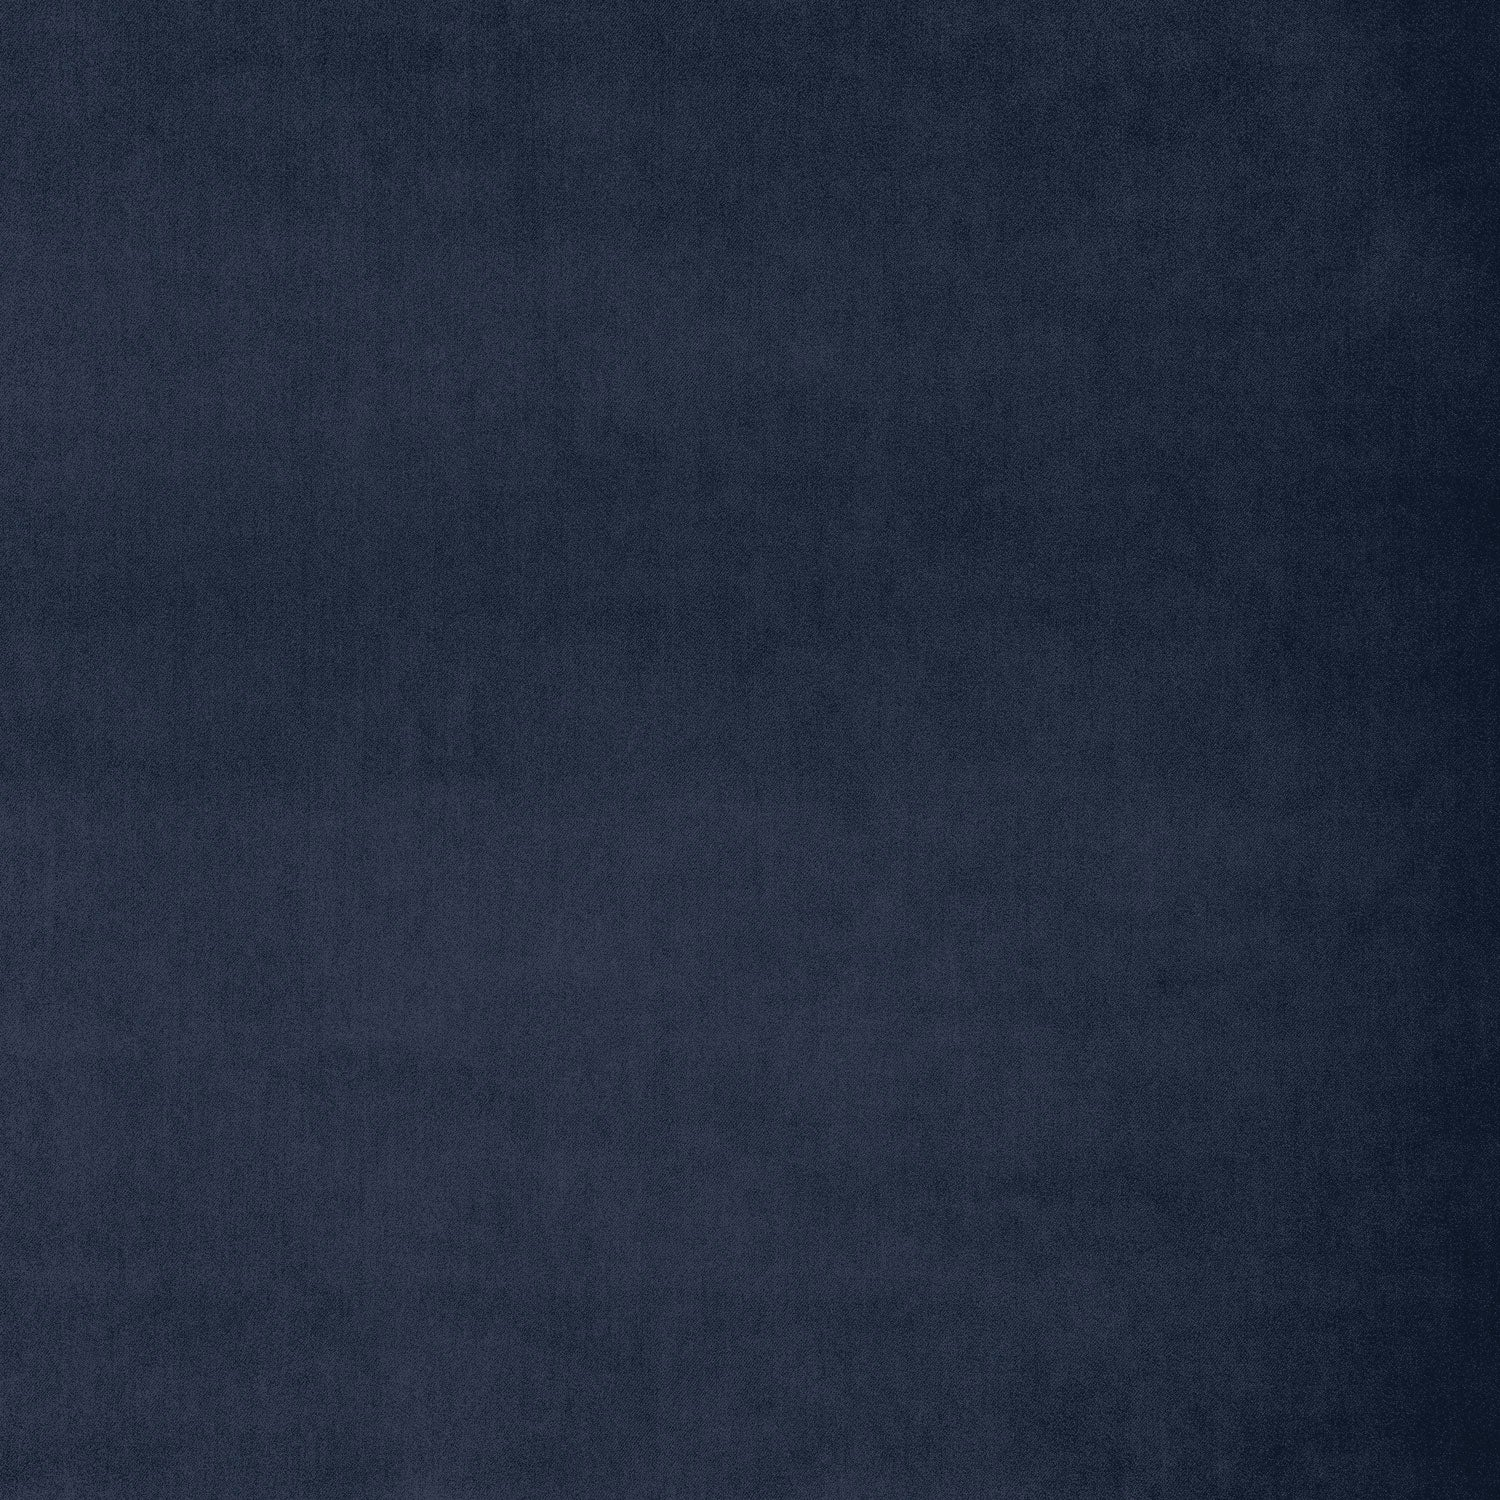 Fabric swatch of a luxury dark blue velvet fabric for curtains and upholstery with a stain resistant finish